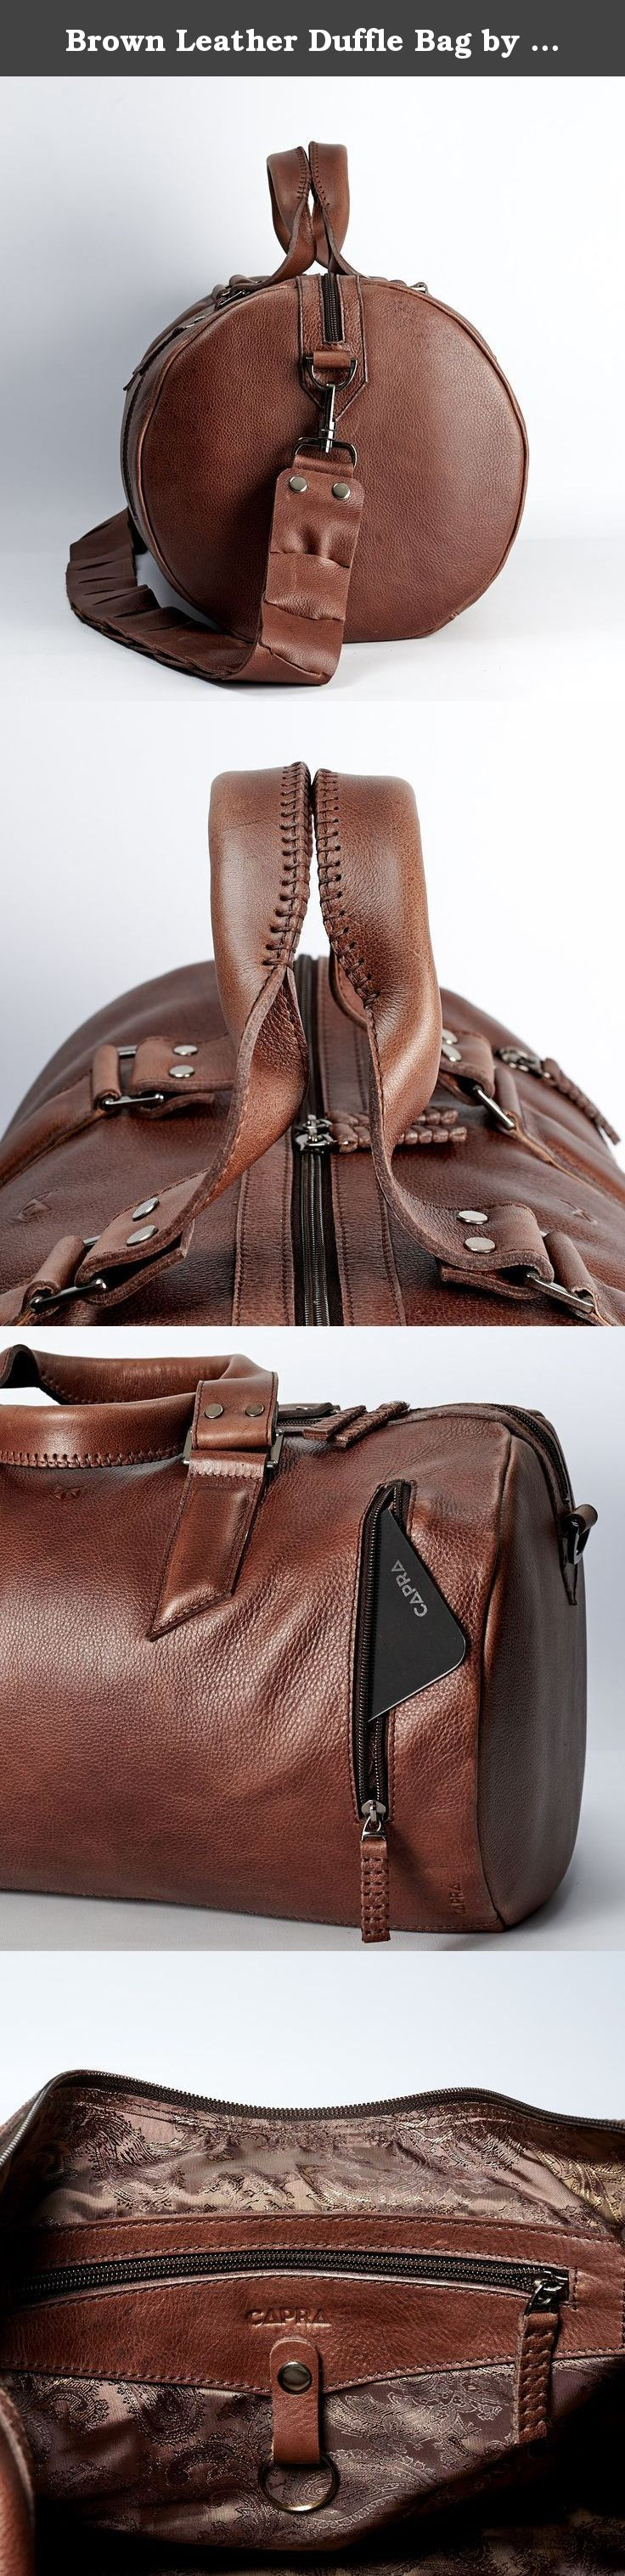 adef5e2f97dd Brown Leather Duffle Bag by Capra Leather. Size  25 Liters. Personalized